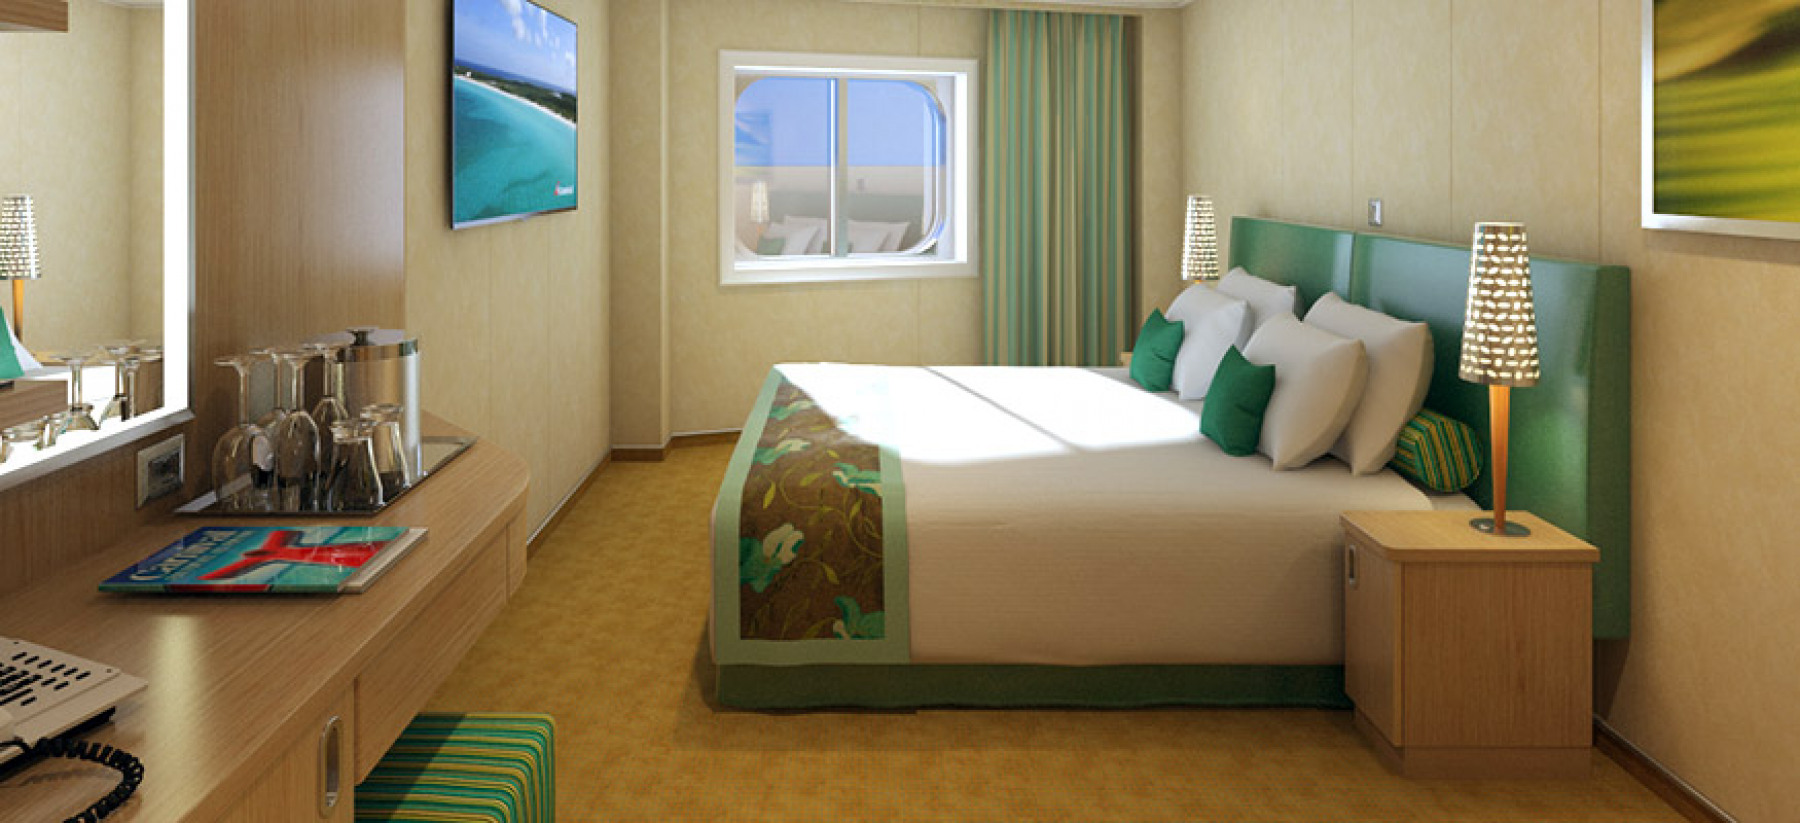 Carnival Cruises Carnival Horizon Accommodation Cloud 9 Oceanview.jpg